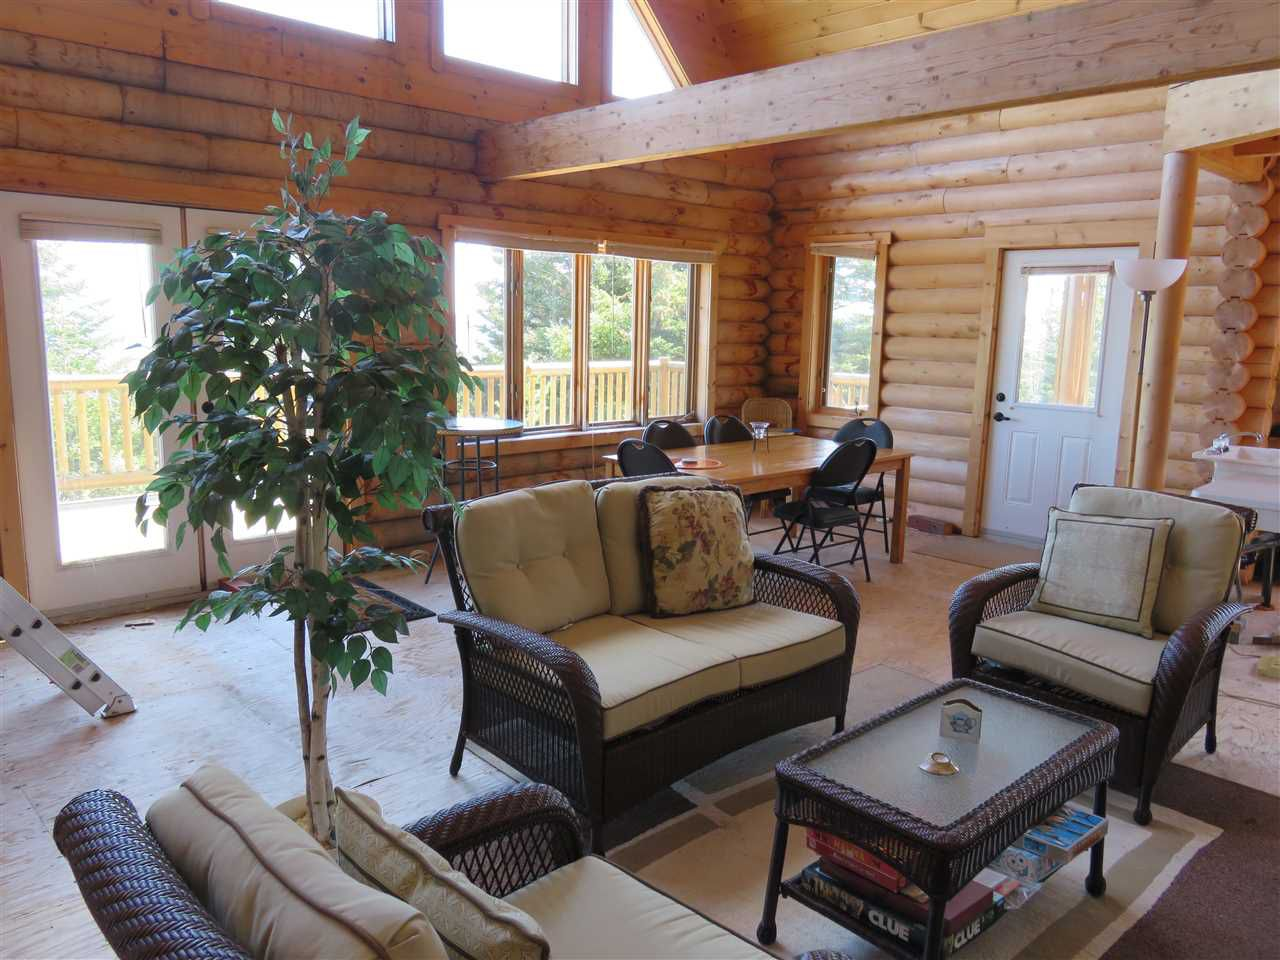 Photo 11: Photos: 198 SEASIDE Drive in Louis Head: 407-Shelburne County Residential for sale (South Shore)  : MLS®# 4686576